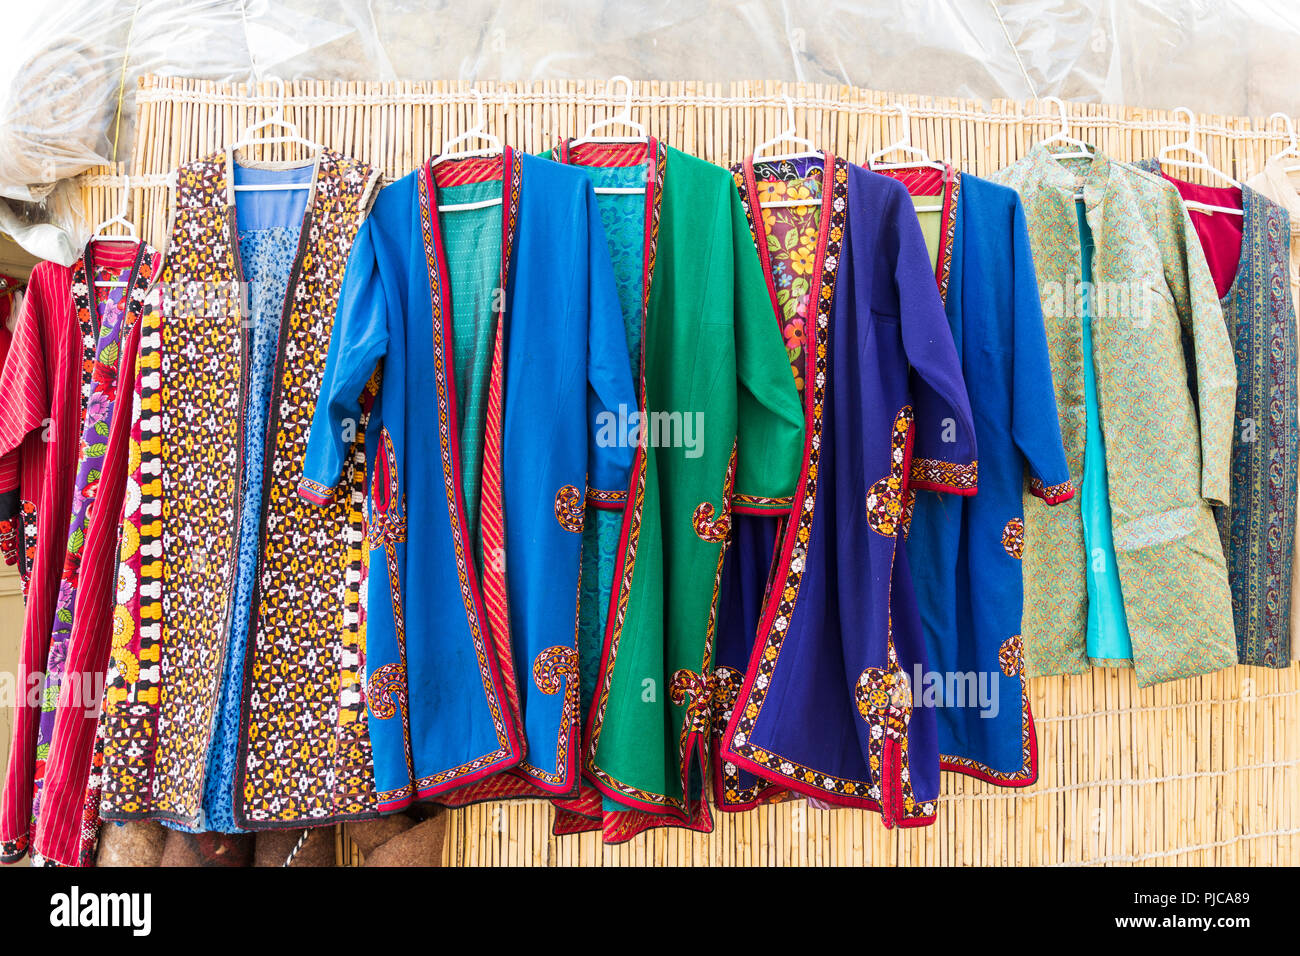 bbc9ef6c20ce Iran. Isfahan. Traditional clothing for sale Stock Photo  217859721 ...